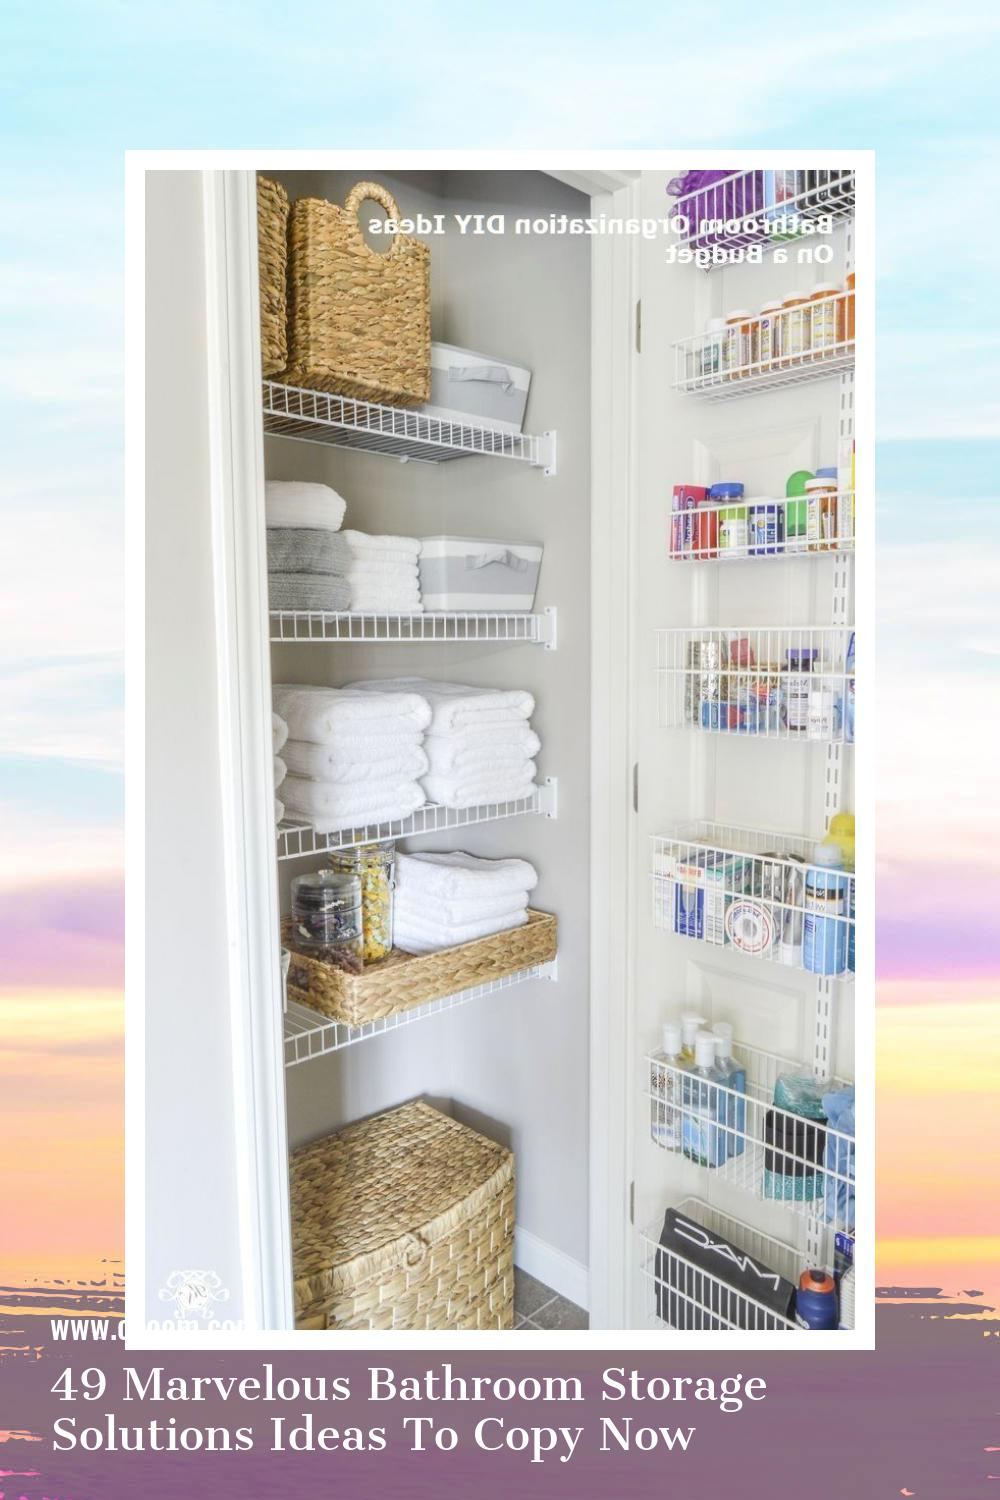 49 Marvelous Bathroom Storage Solutions Ideas To Copy Now 45